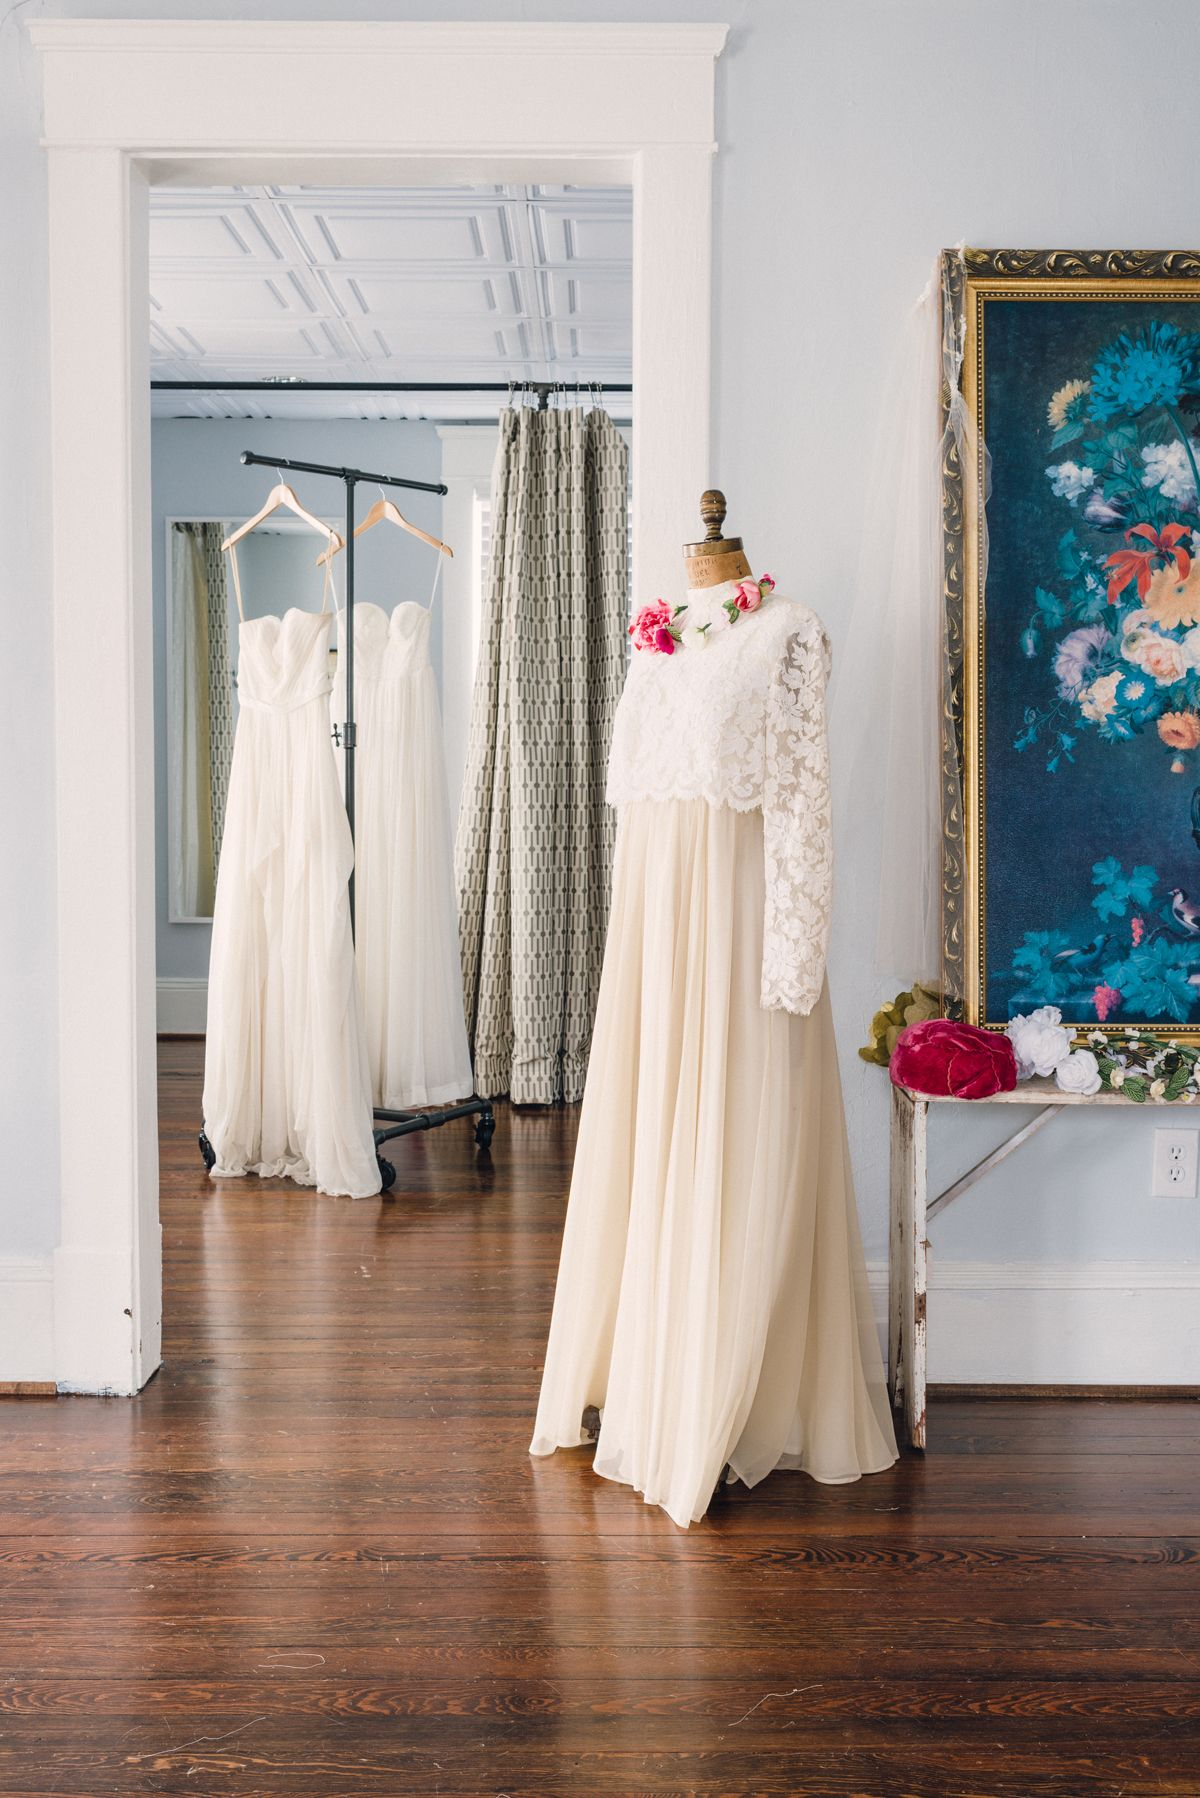 Studio Tour With Gabi Of The Sentimentalist In Atlanta Ga Read More Http Www Theschoolofstyling Co Bridal Shop Ideas Bridal Boutique Wedding Dresses Lace